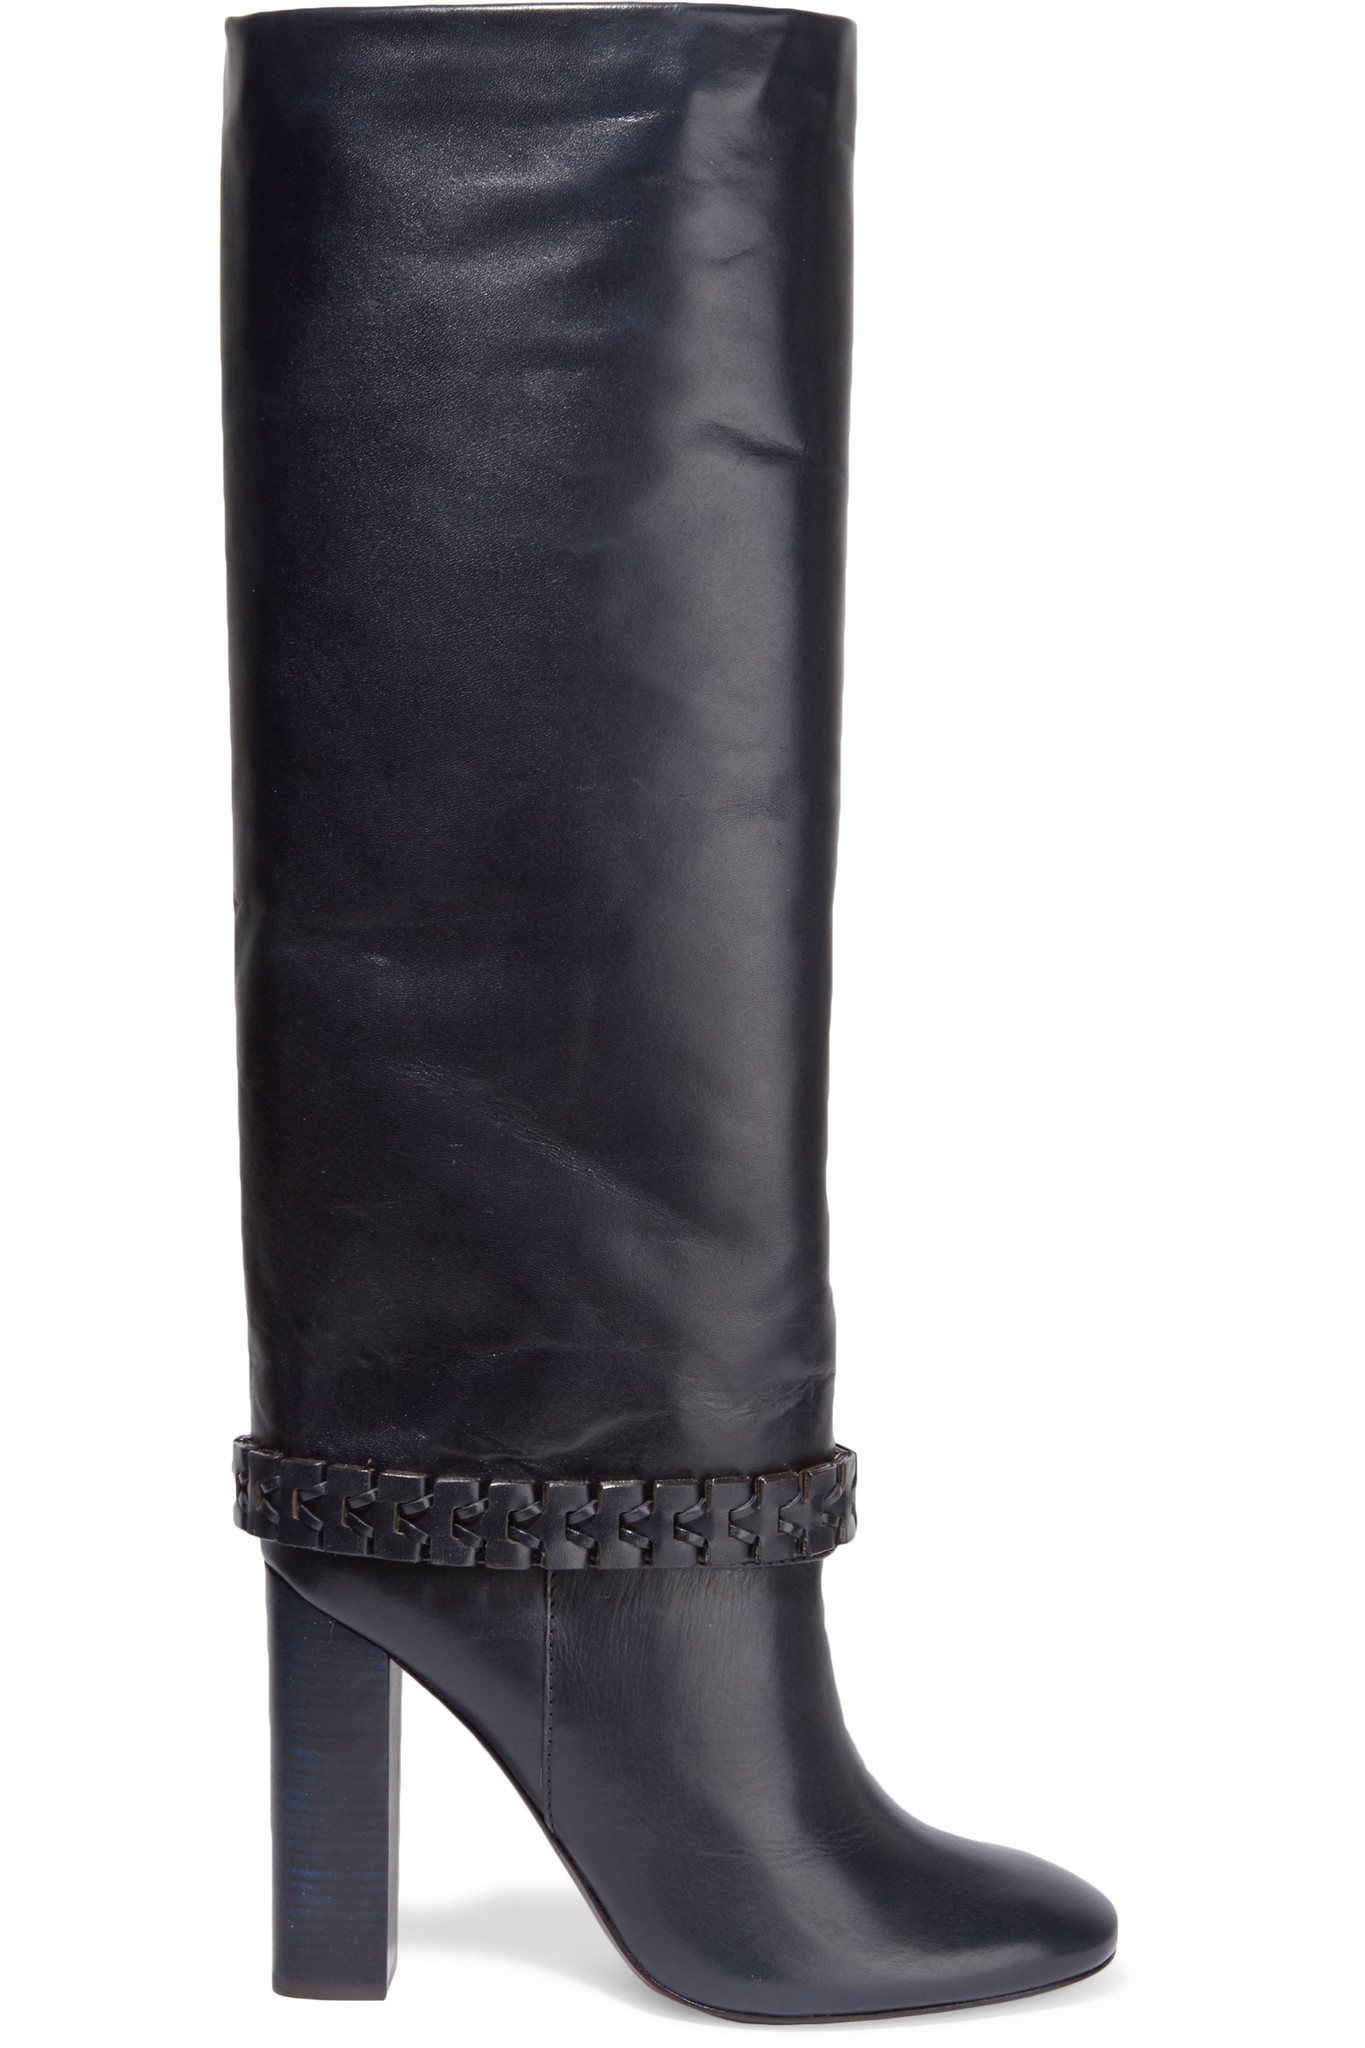 b53adc39be3 Tory Burch Sarava Leather Knee Boots in Blue - Lyst